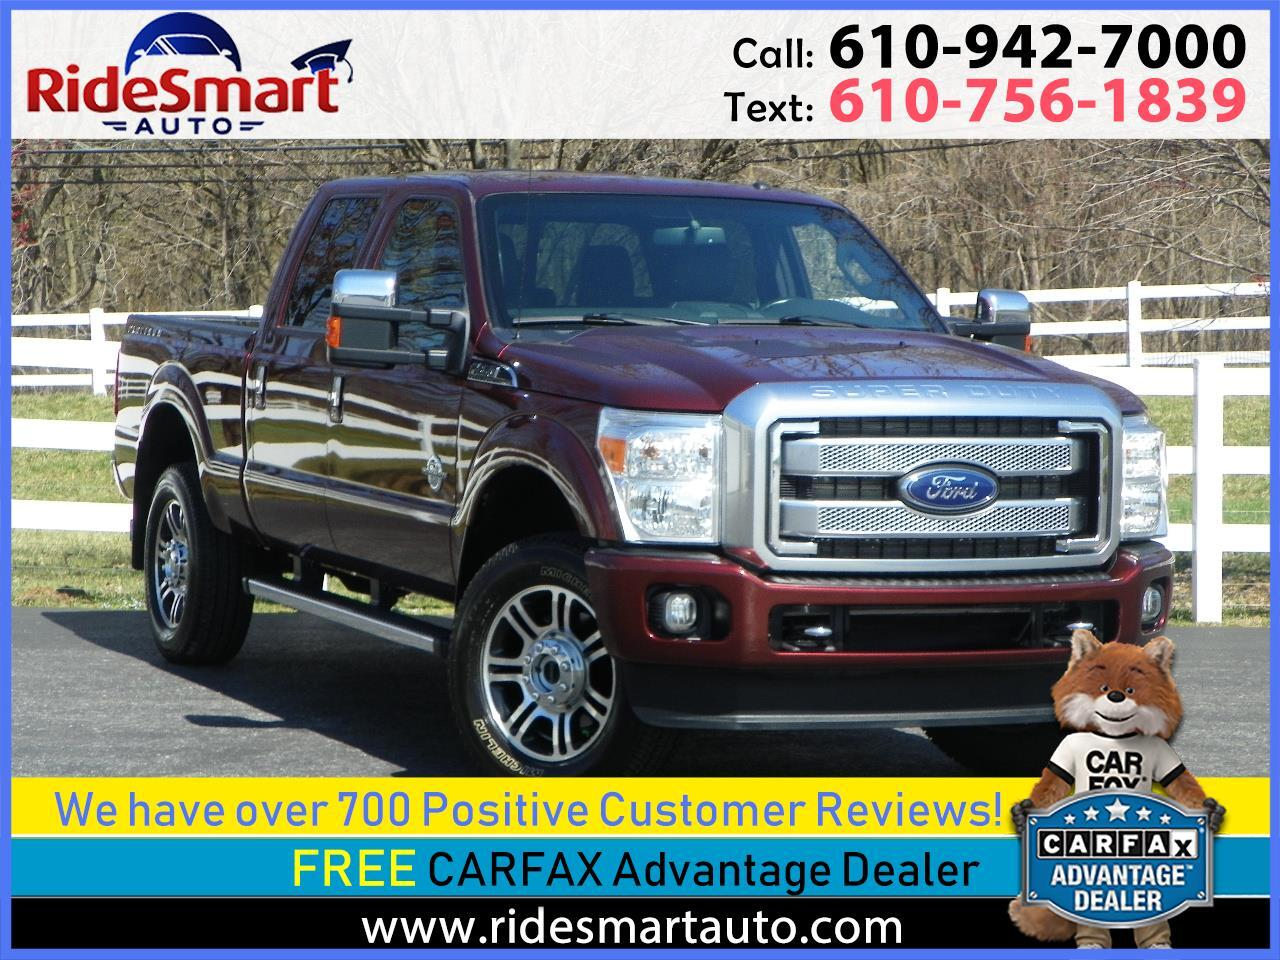 2016 Ford F-350 SD Platinum Crew Cab F-350 Long Bed Diesel 4WD